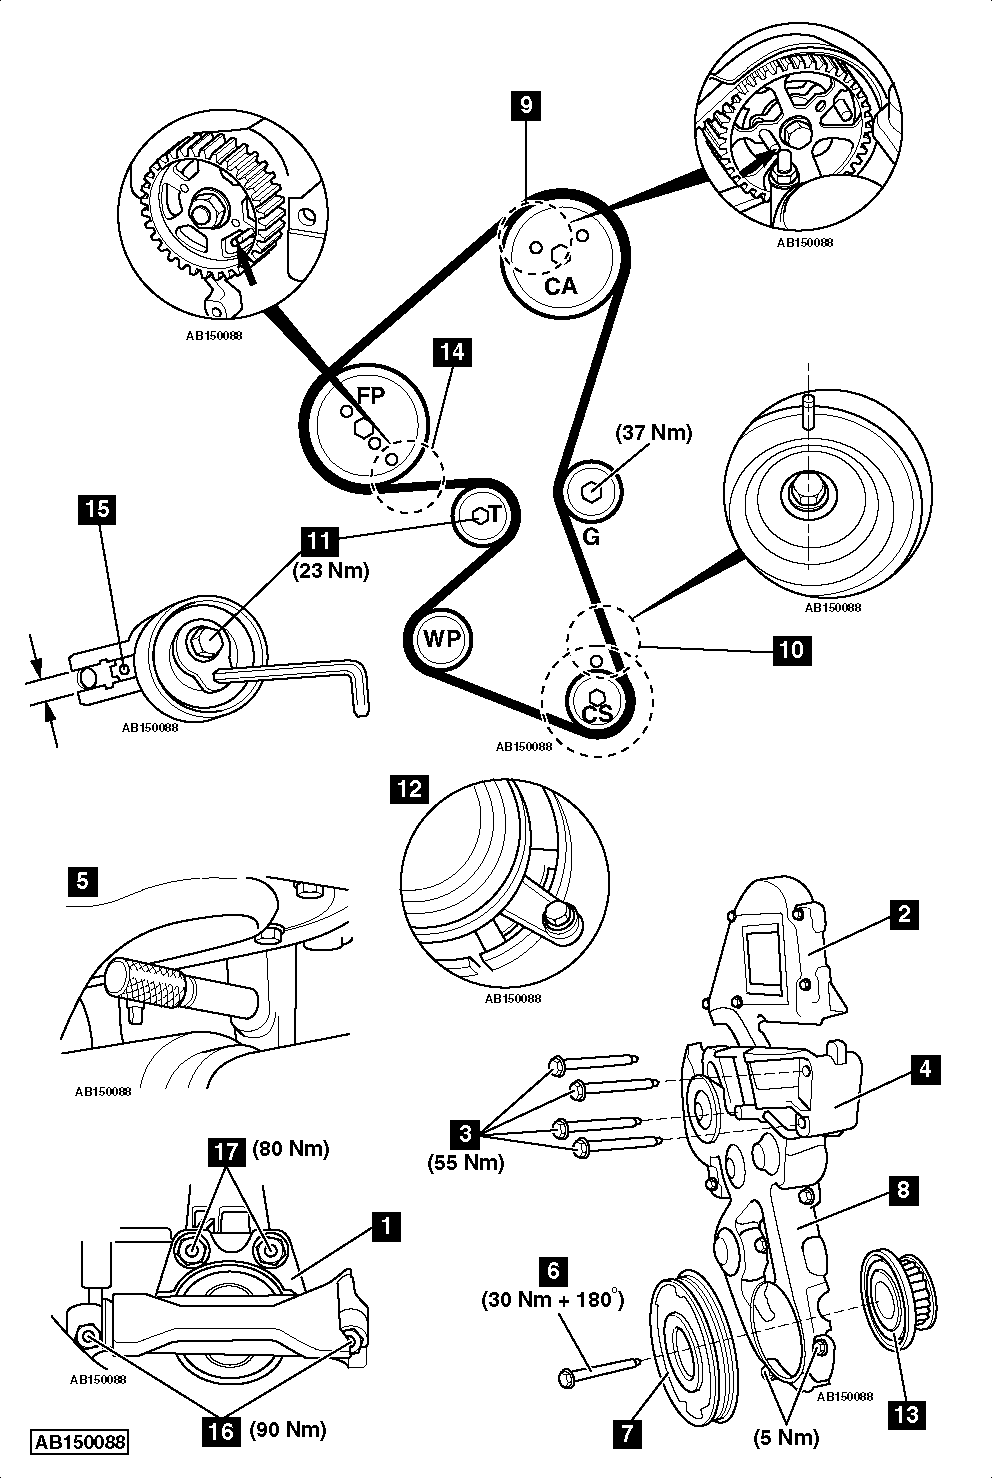 Replace timing belt Ford C MAX 16 TDCi 2007 2010 replace timing belt ford c max 1 6 tdci 2007 2010 ford c max wiring diagram at crackthecode.co